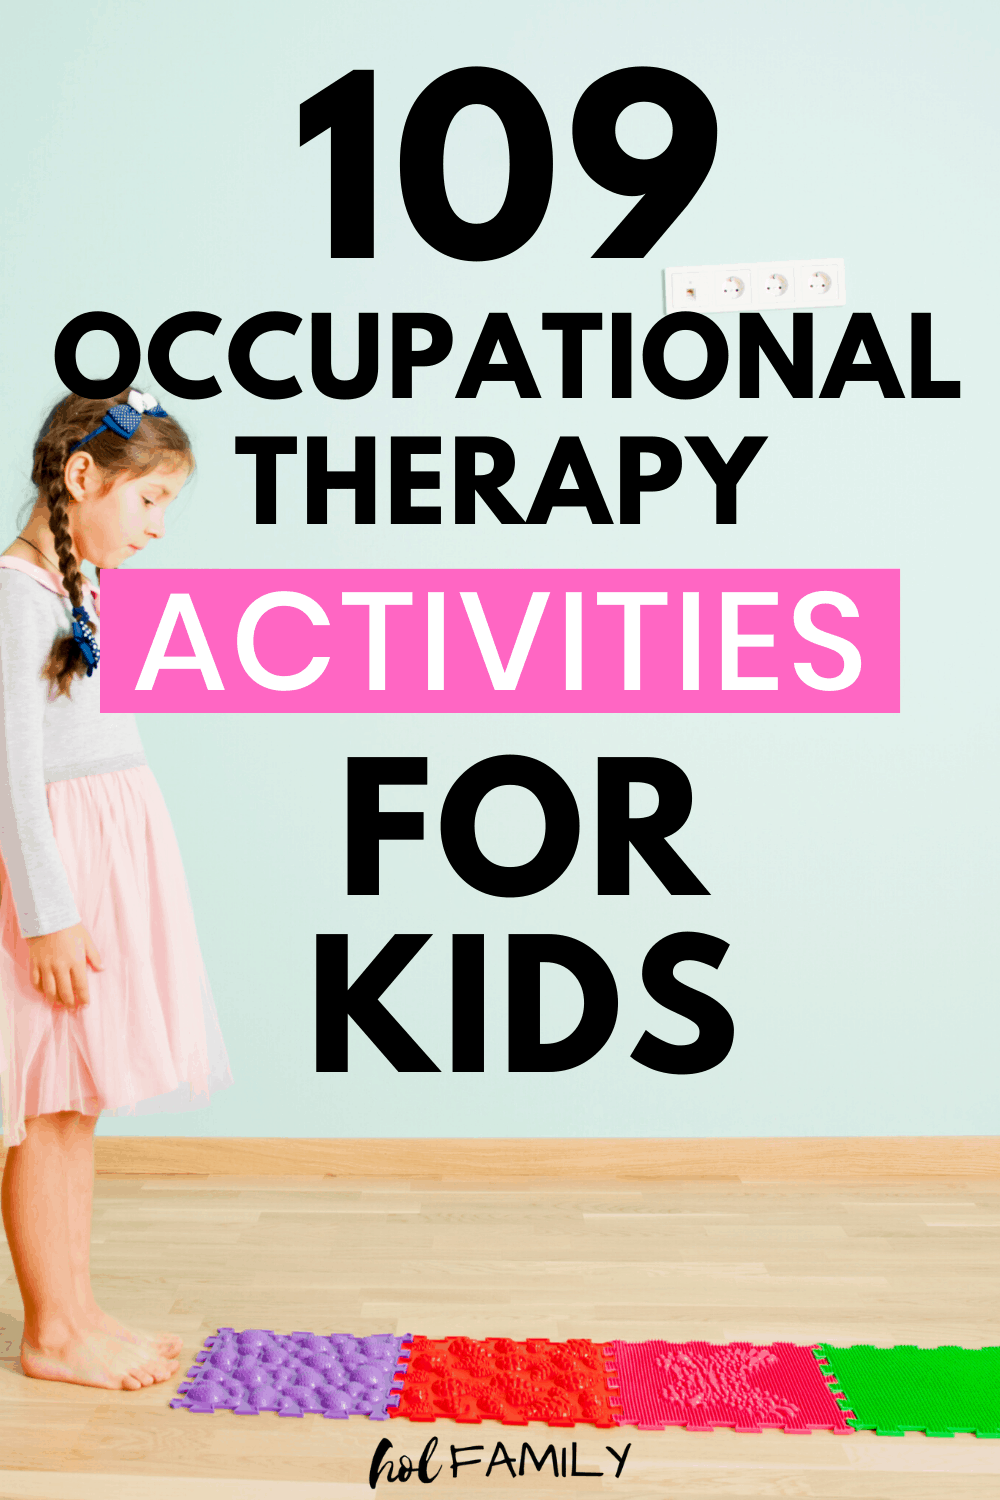 Occupational Therapy Activities for Kids at Home